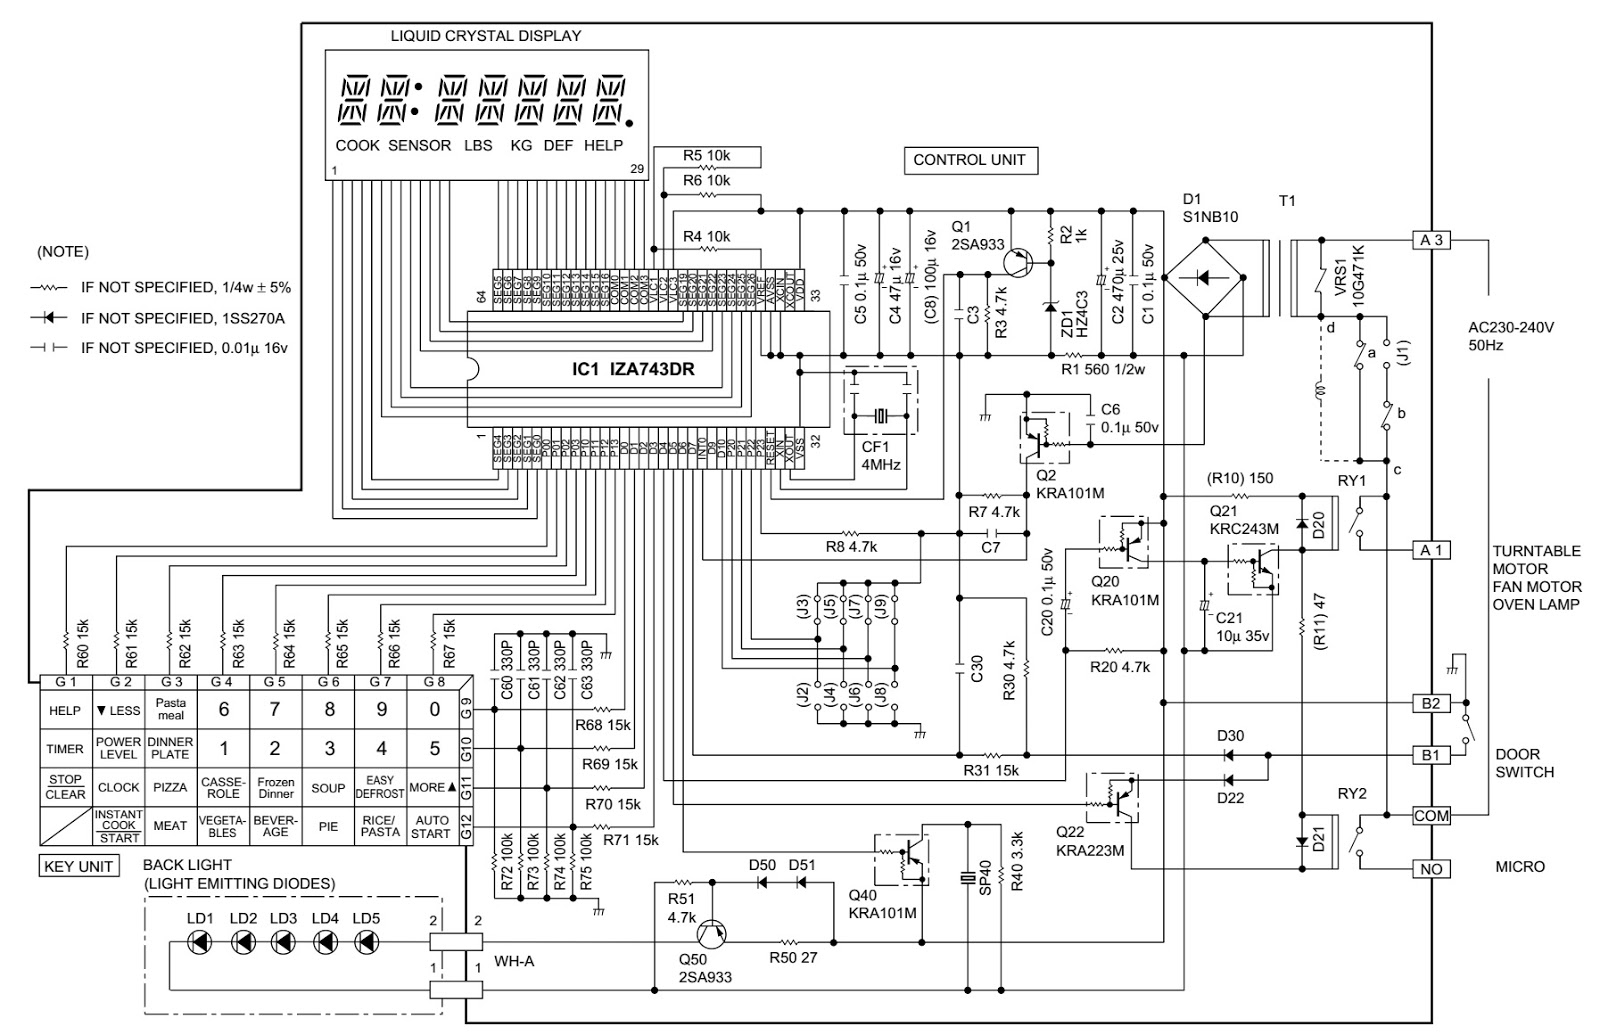 Lg Microwave Oven Circuit Diagram 1998 Honda Civic Ignition Switch Wiring American Shuffleboard 36